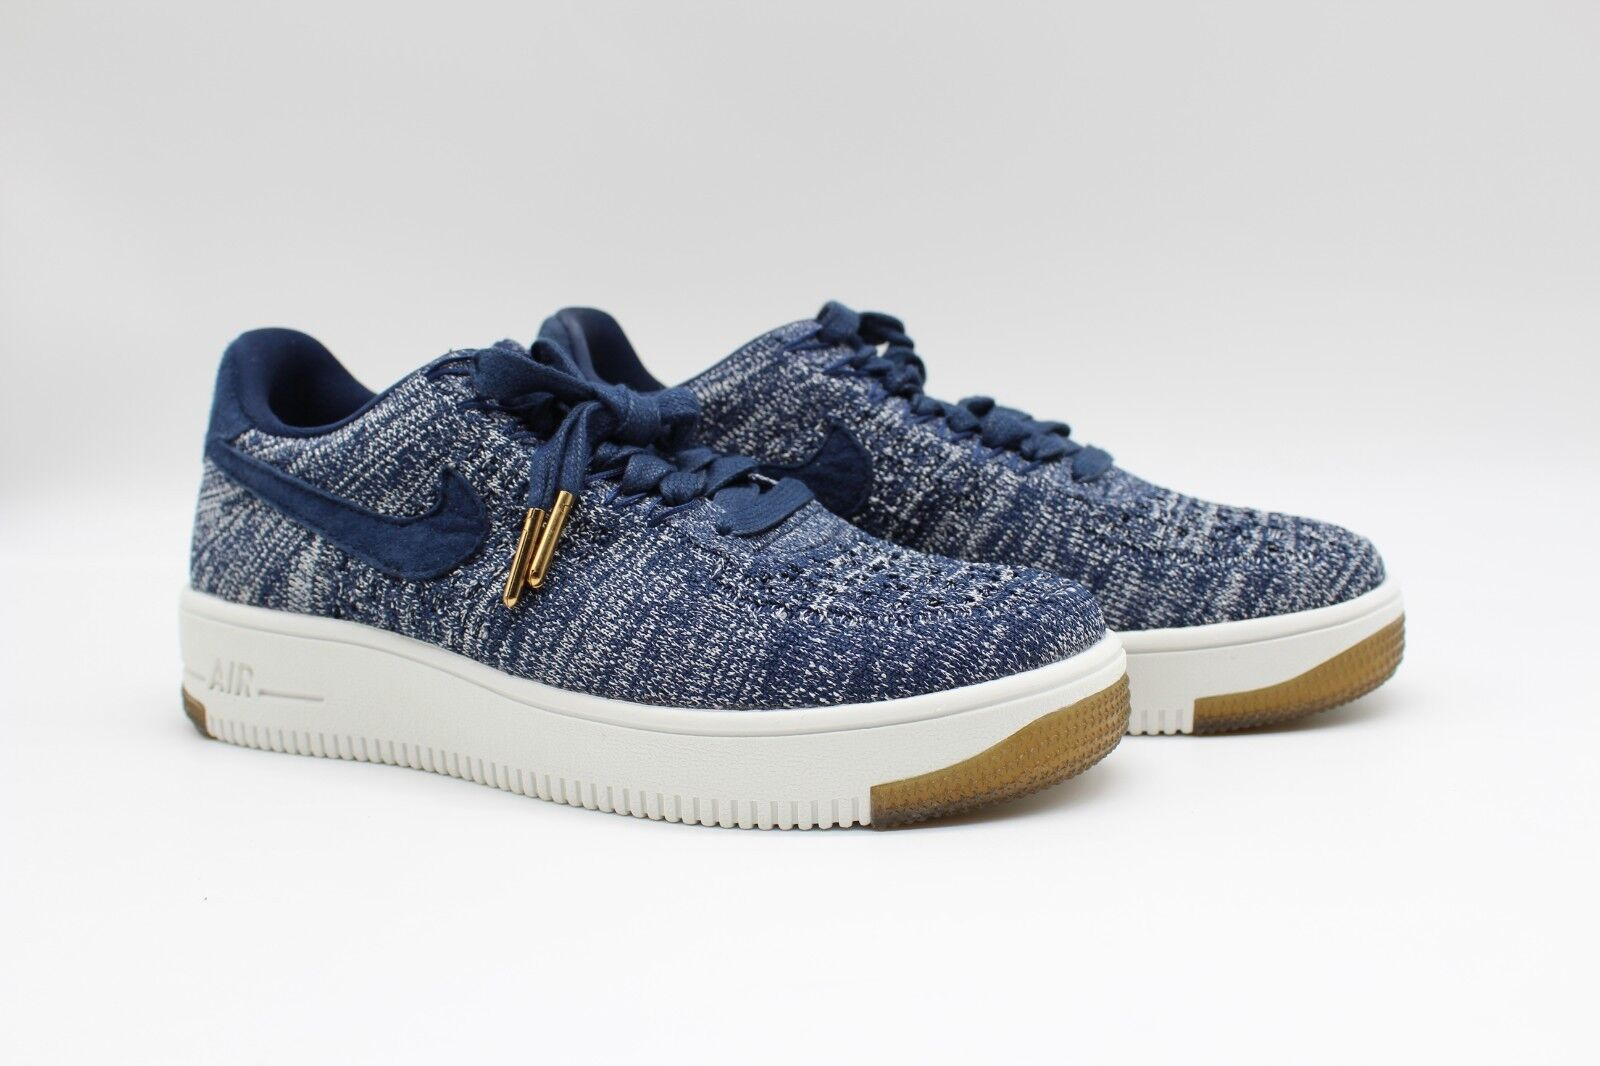 Nike Damen Air Force 1 Niedrig Flyknit 820256-402